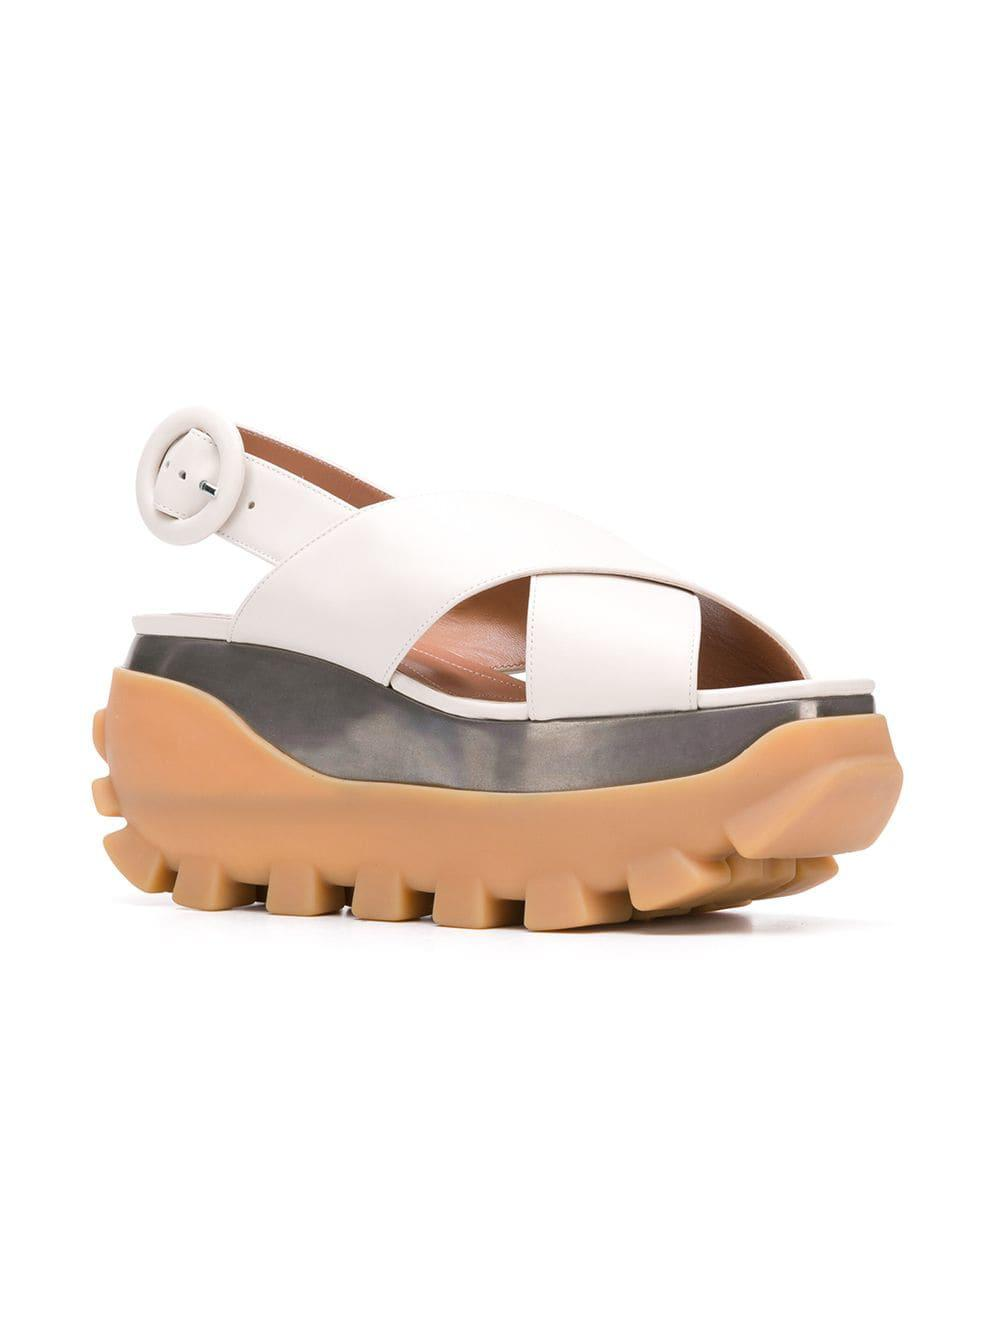 dc121c561d1 Marni Crossover Wedge Sandals in White - Lyst